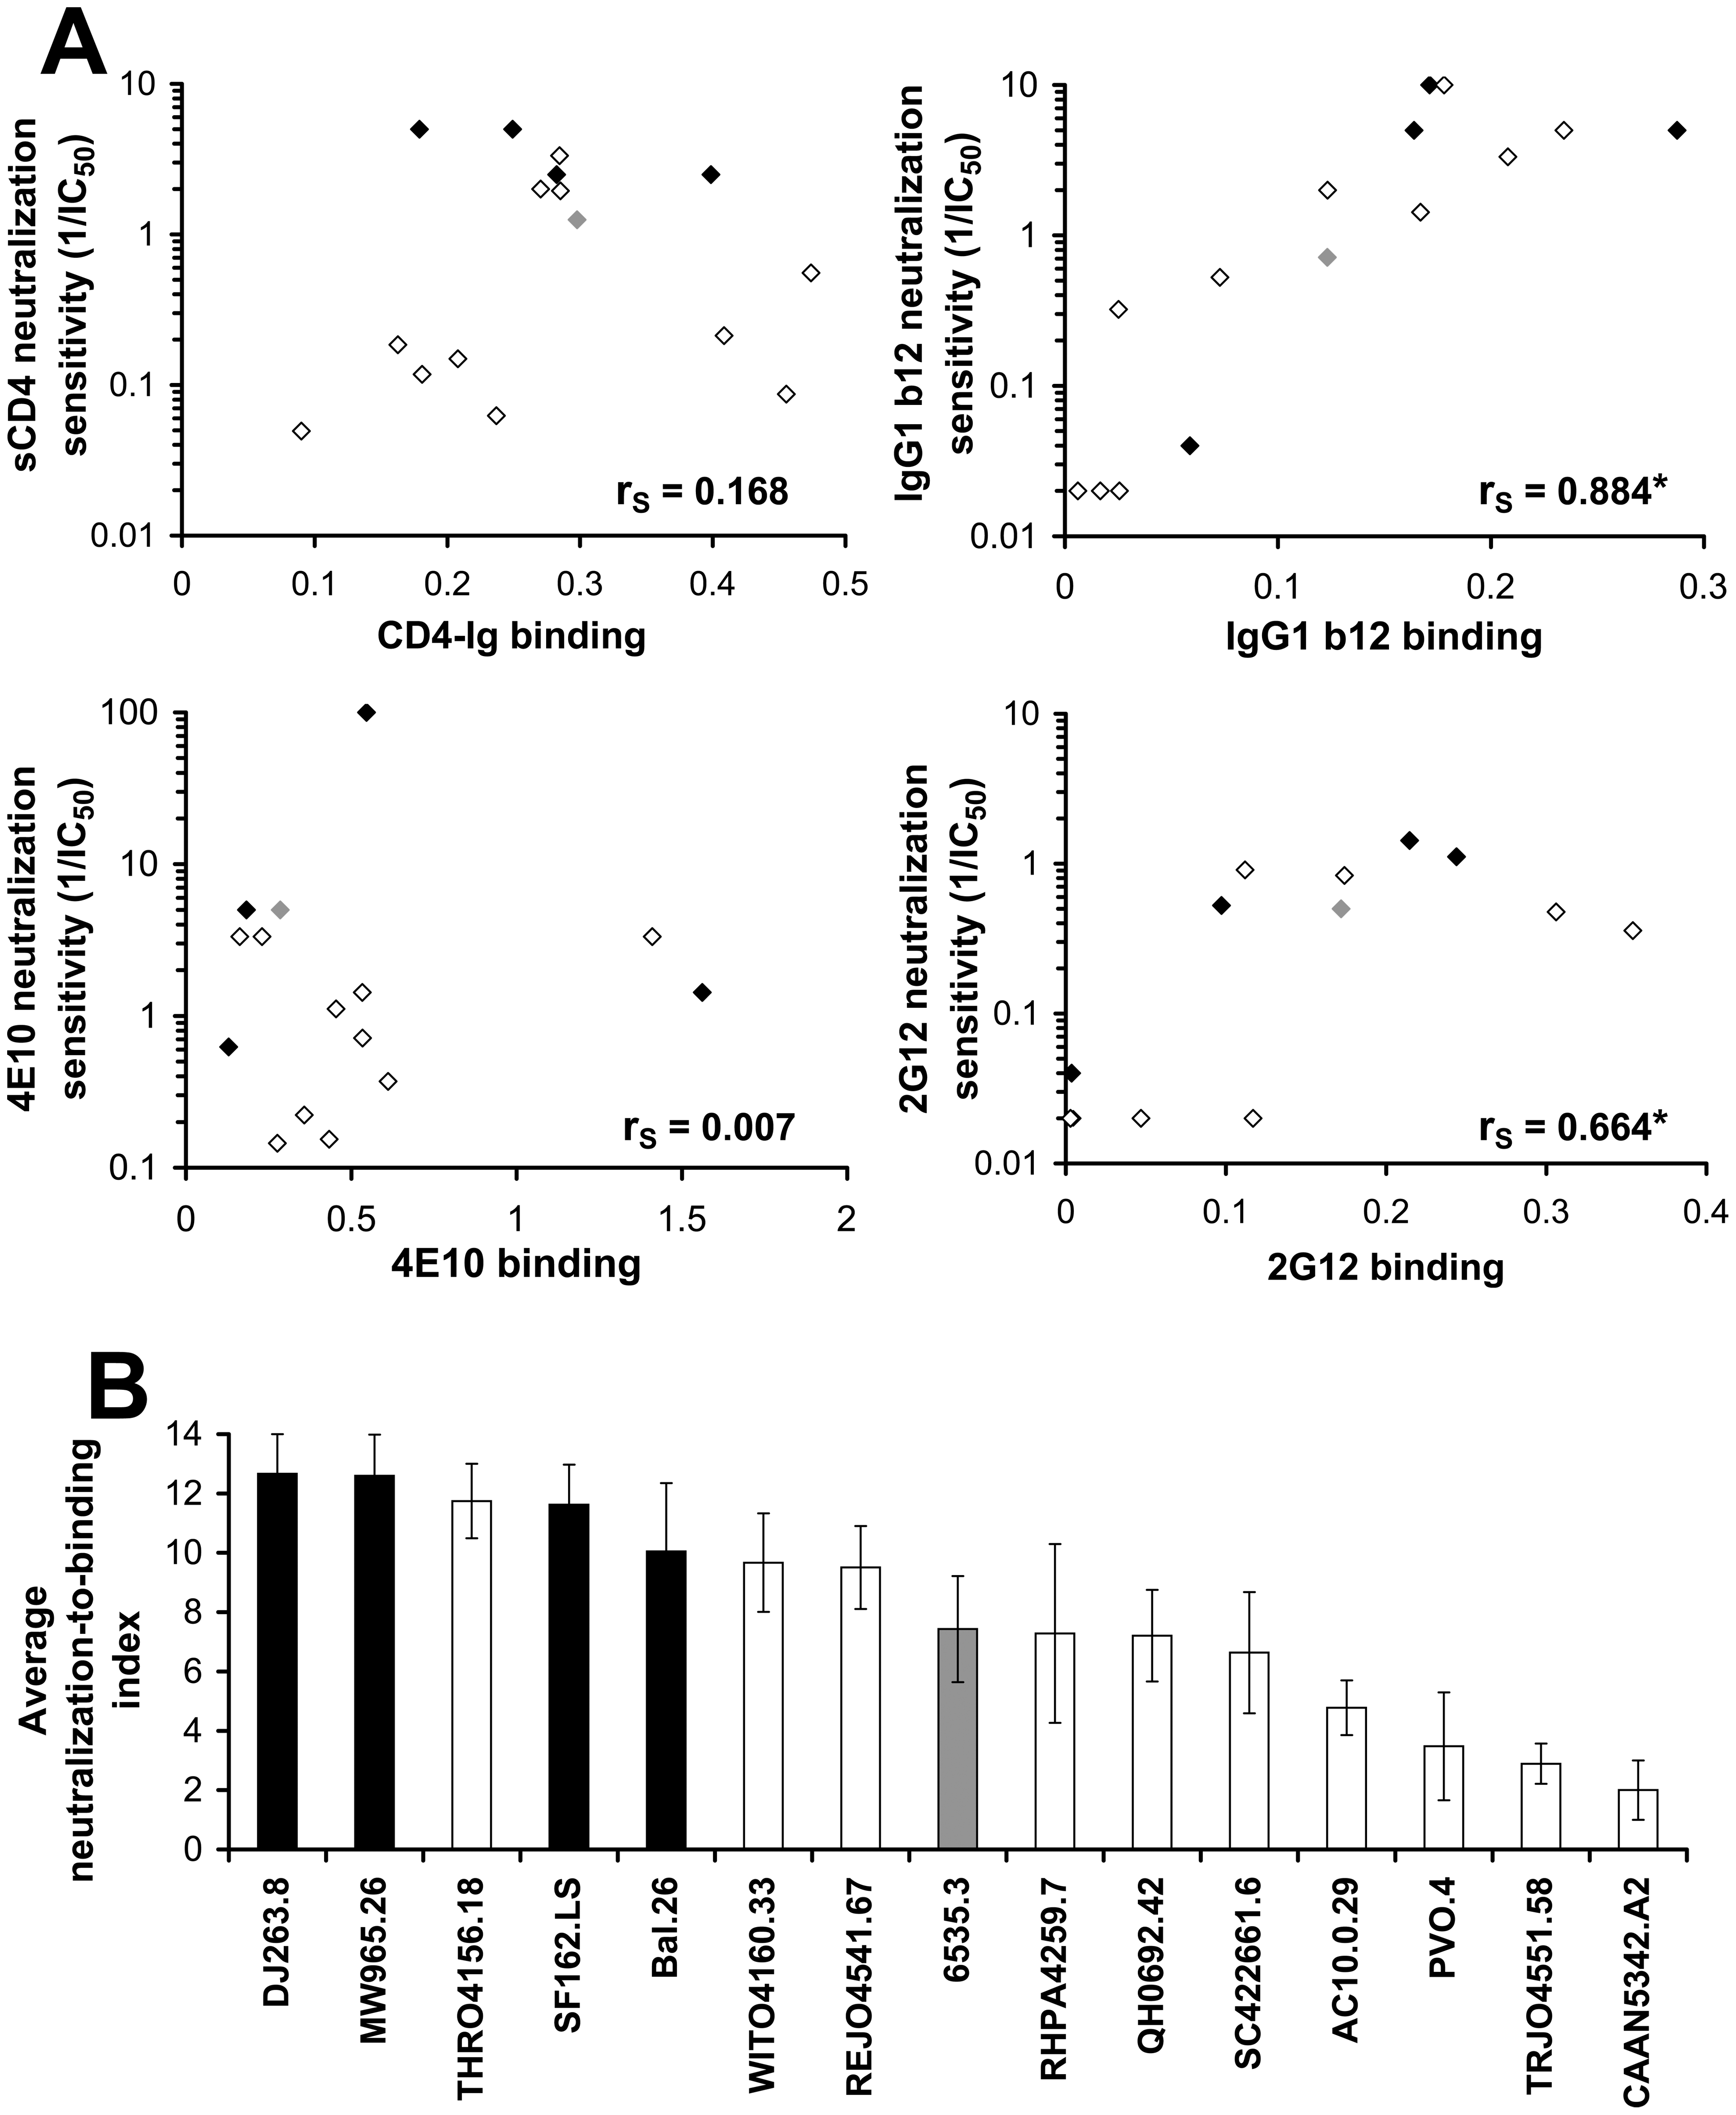 Relationship between inhibitor binding and inhibition efficiency in a standardized panel of primary HIV-1 isolates.